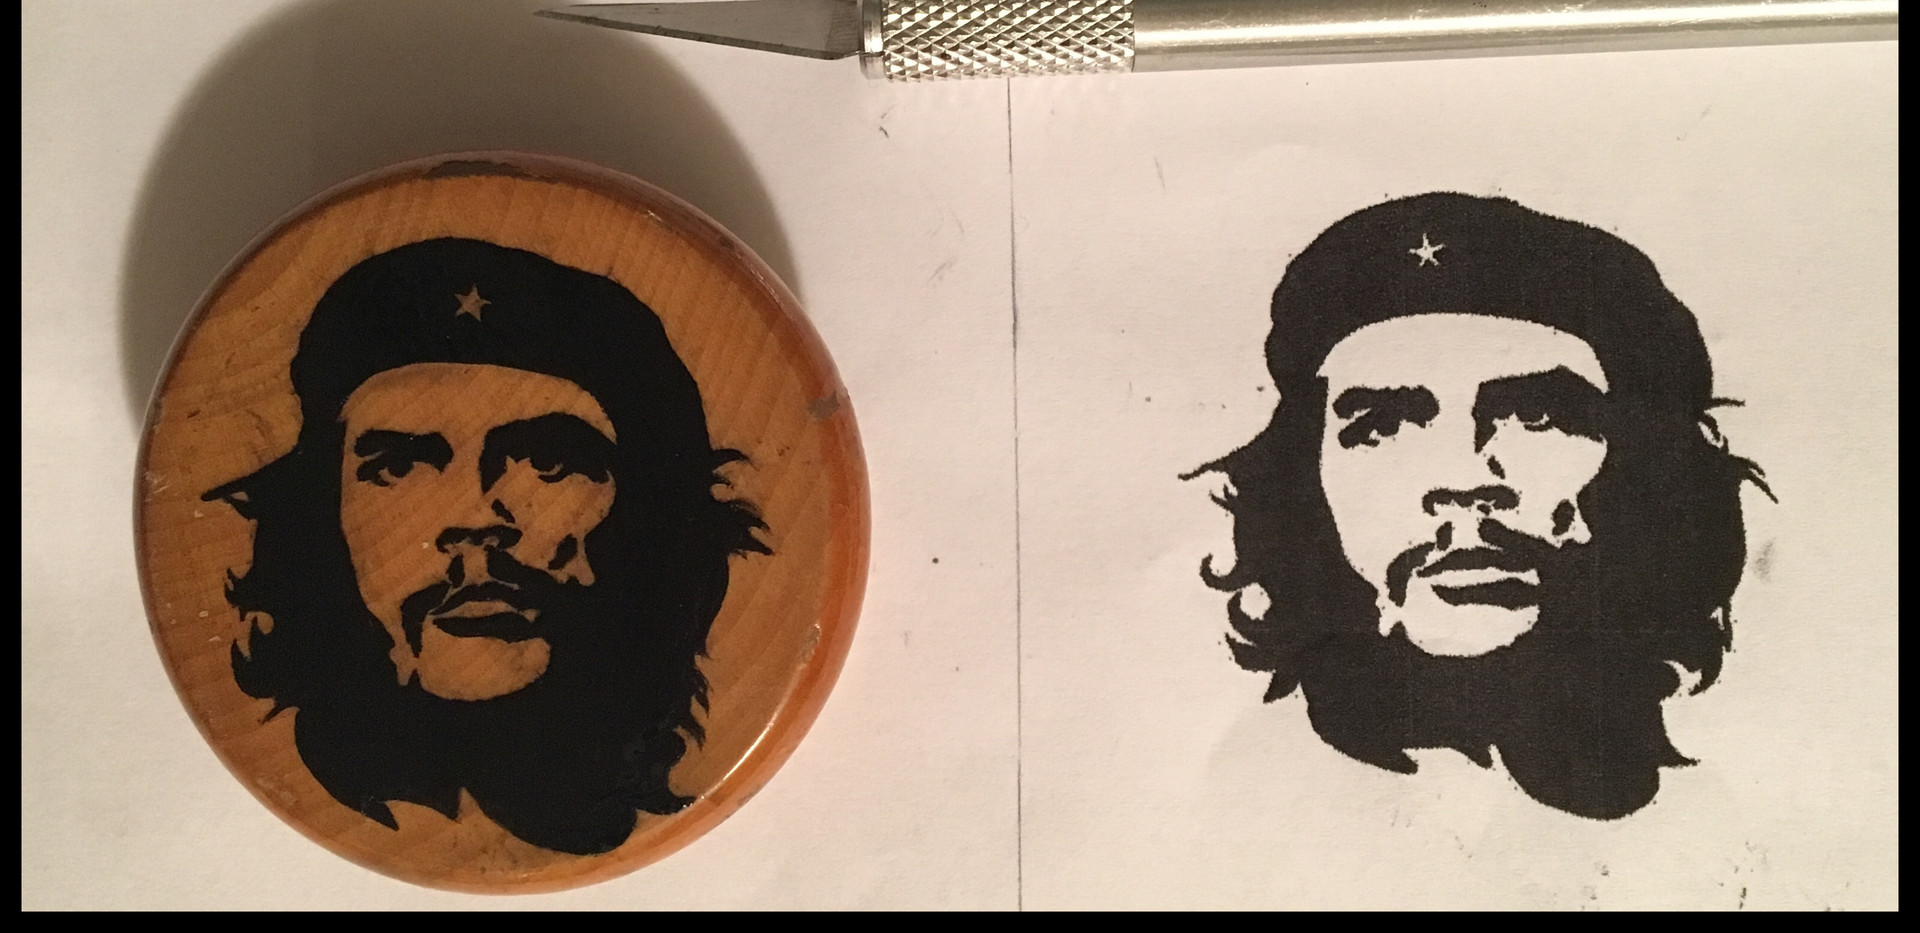 che-grinder-wood-oil-hand-painted-portra